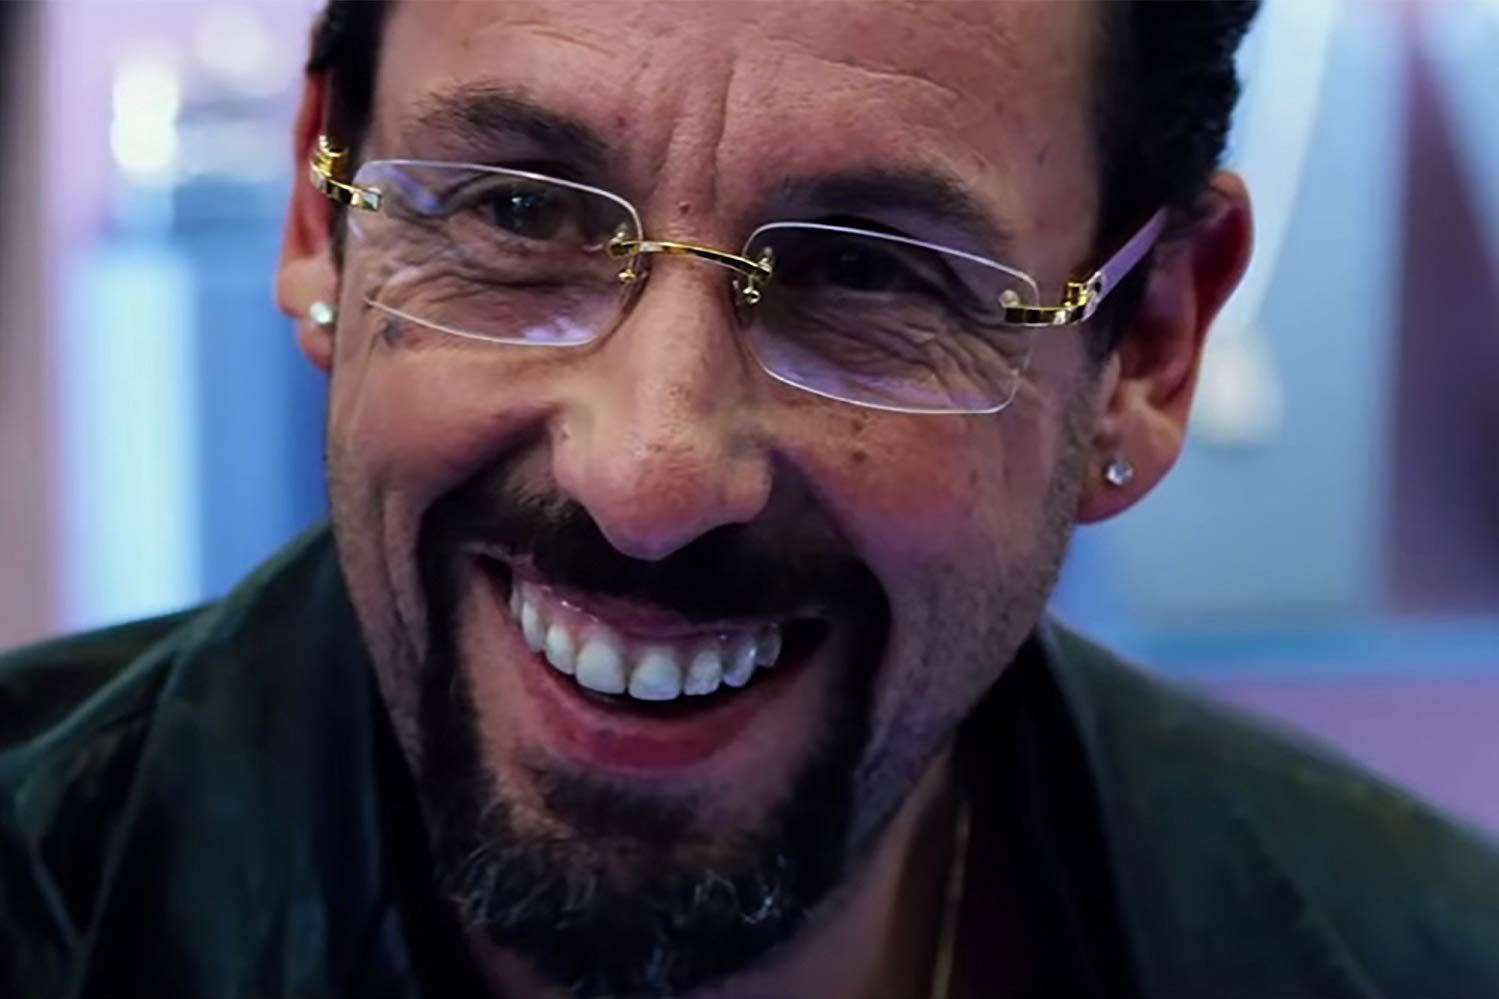 Adam Sandler disappears into the role of Howard Ratner, behind the bad teeth, goatee and ill-chosen glasses